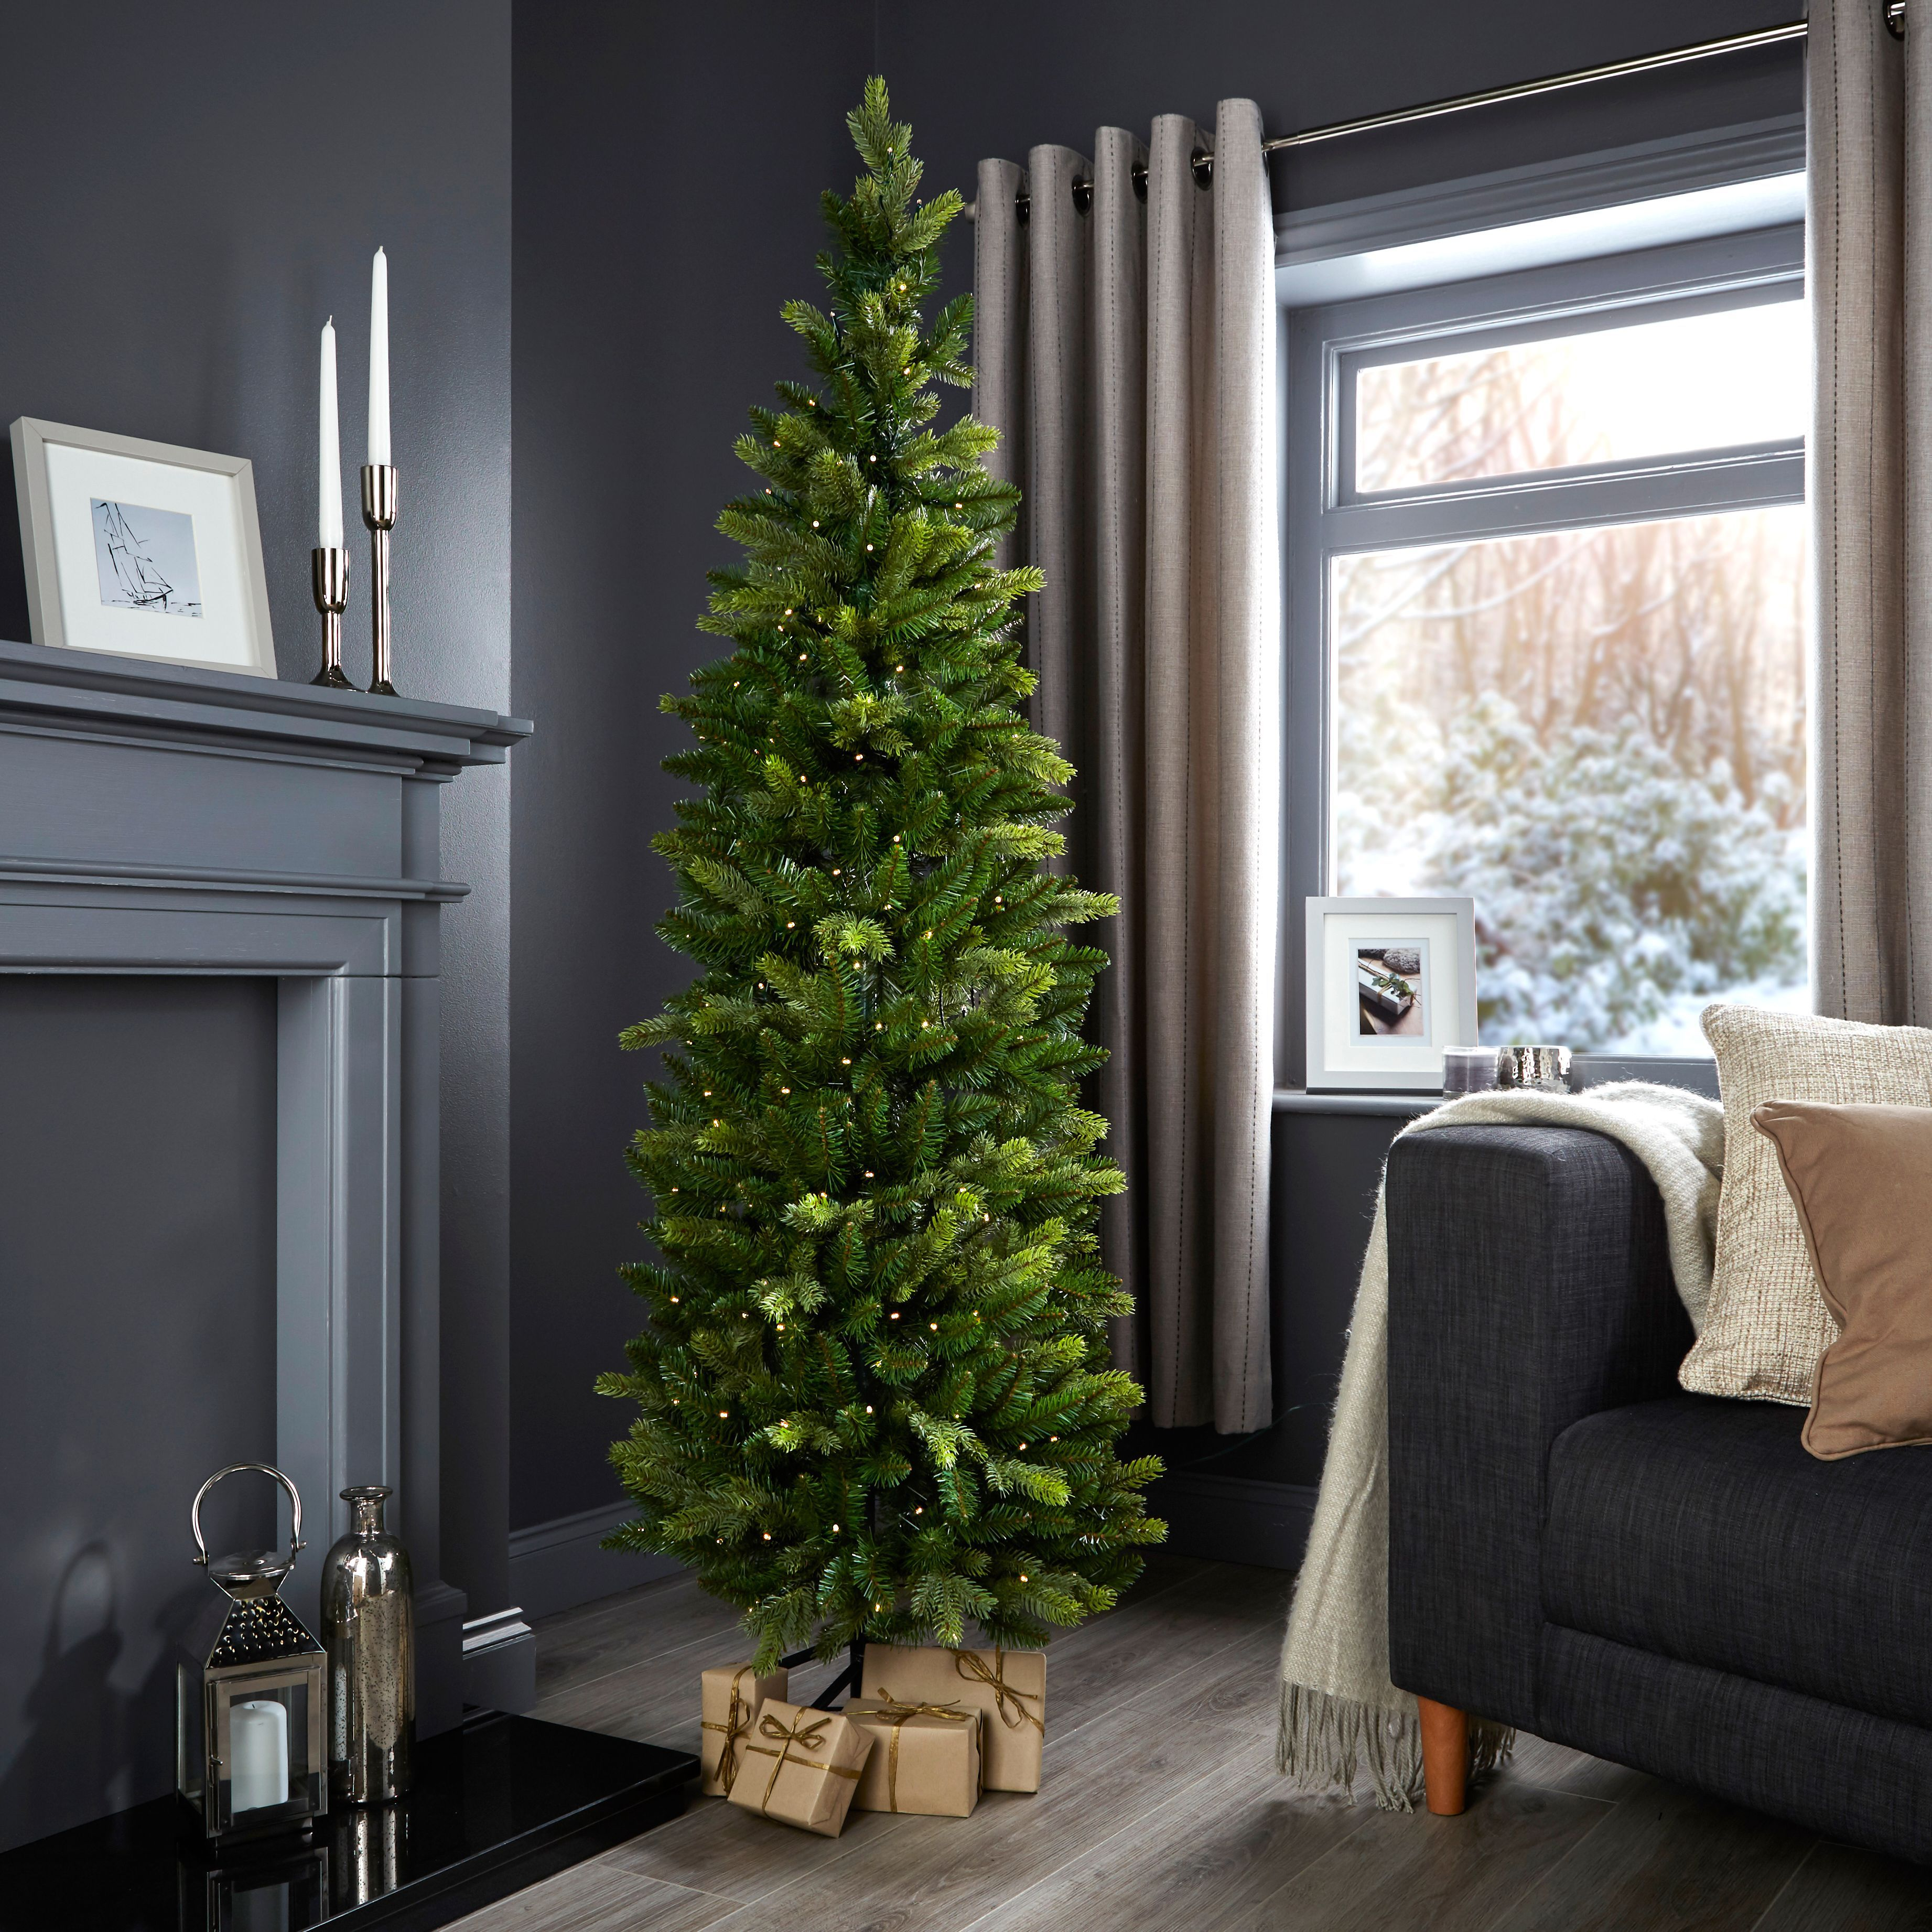 Pop Up Christmas Trees With Lights: 6ft Pop Up Slim Pre-Lit Christmas Tree